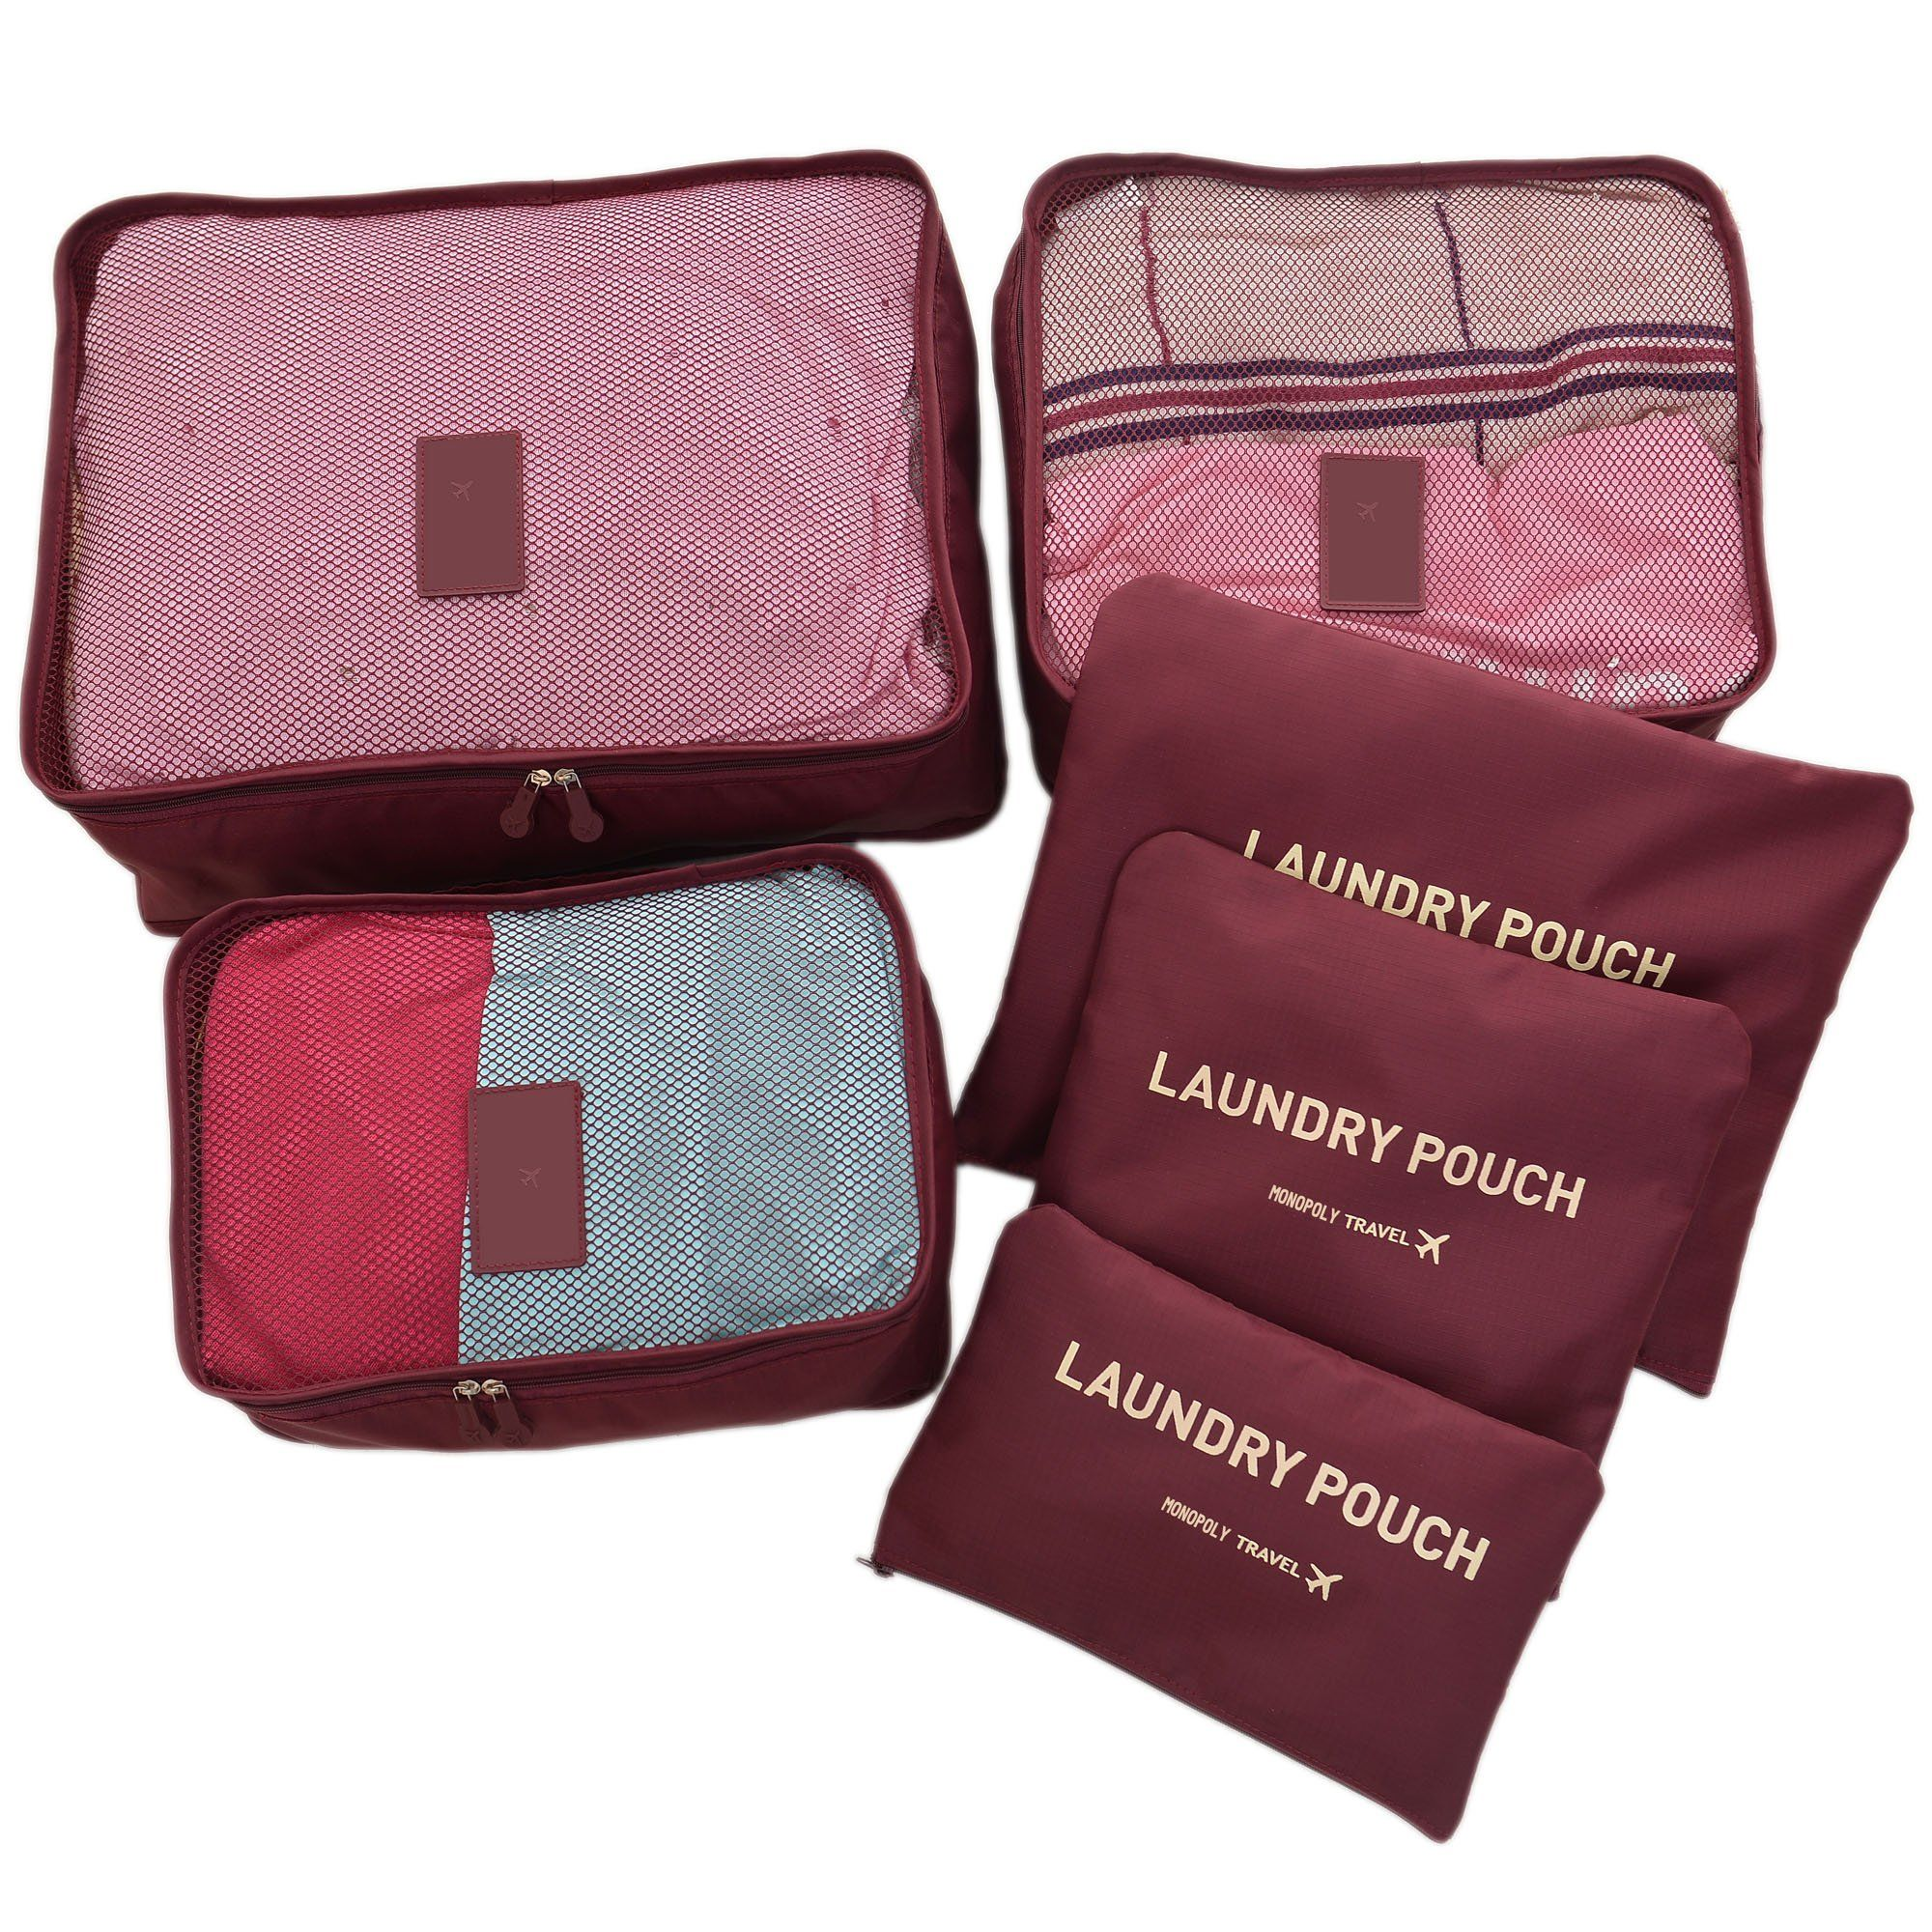 Hopsooken Travel Organizer Luggage Compression Pouches Wine Red 6piece Set See This Great Product Note Shoe Storage Bags Packing Bags Travel Travel Shoes